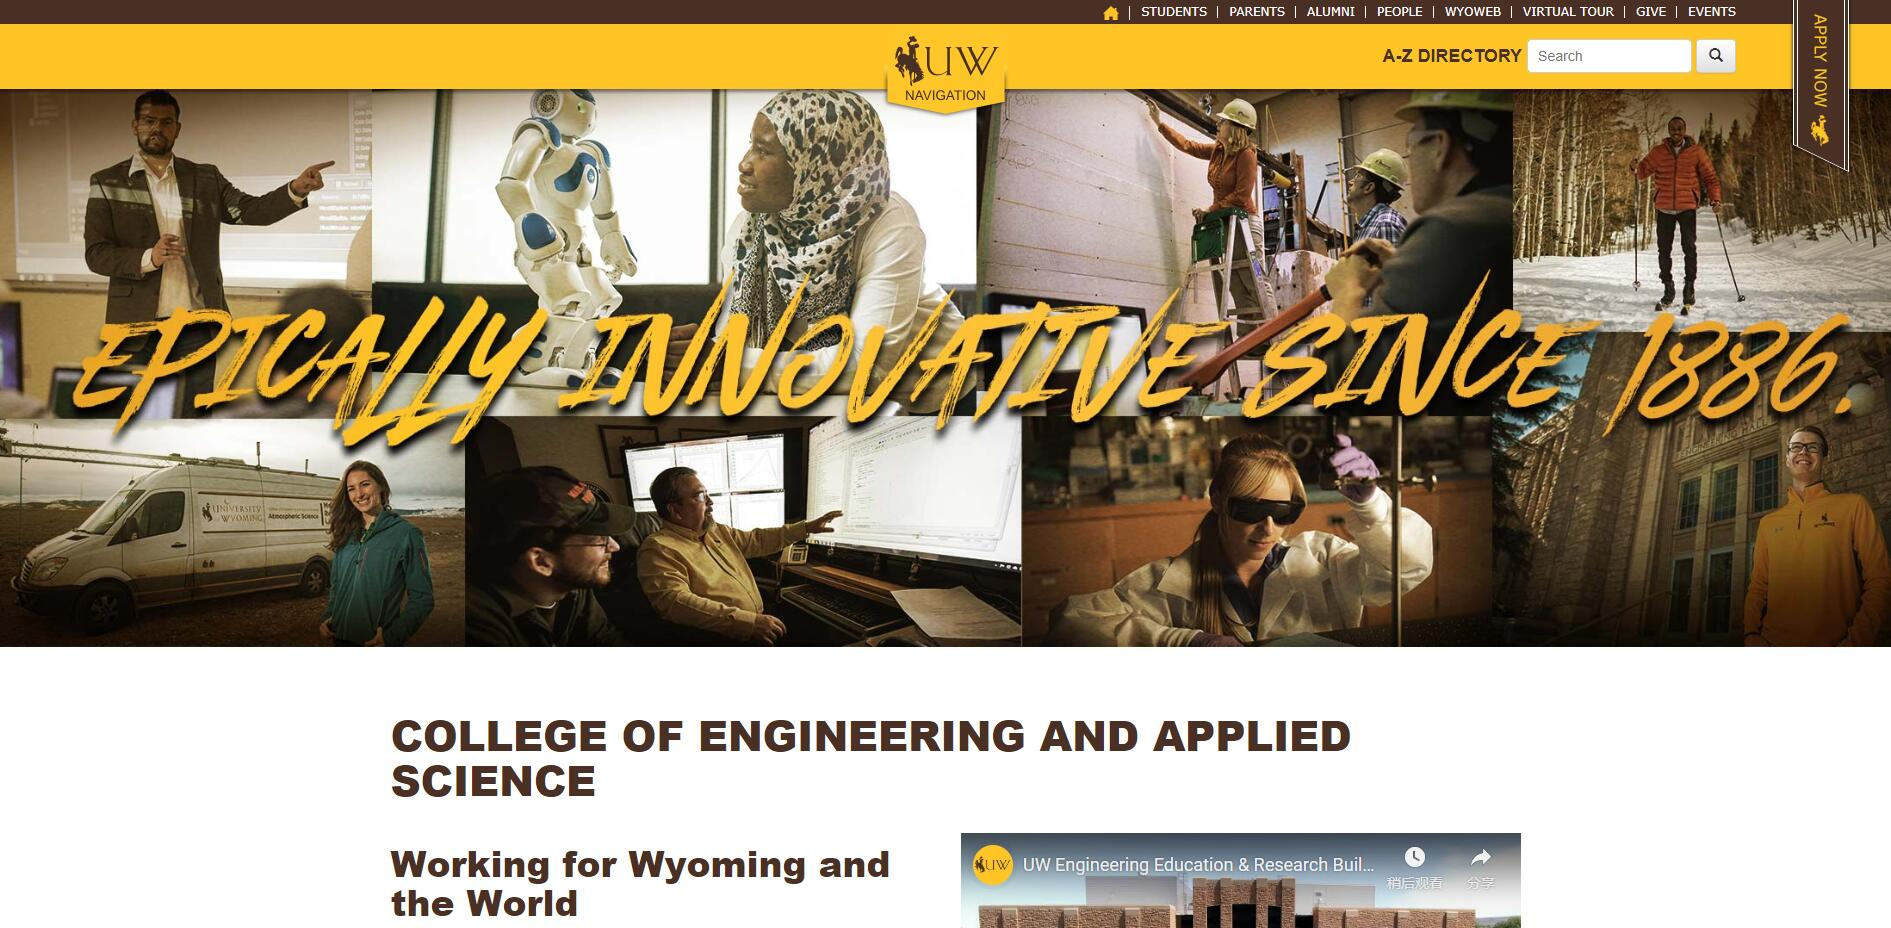 The College of Engineering and Applied Science at University of Wyoming